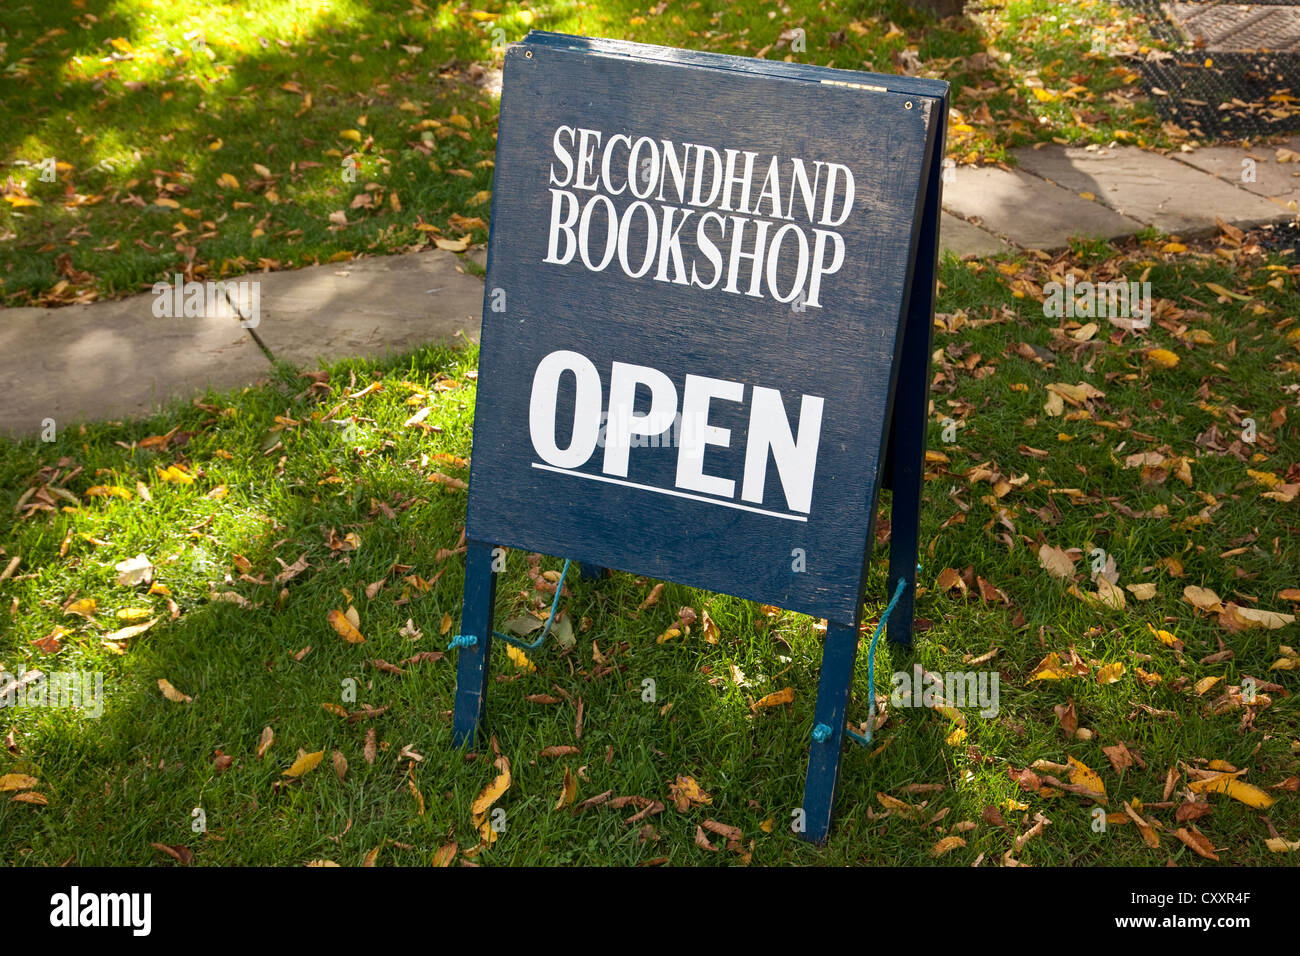 Secondhand Bookshop Open sign - Stock Image